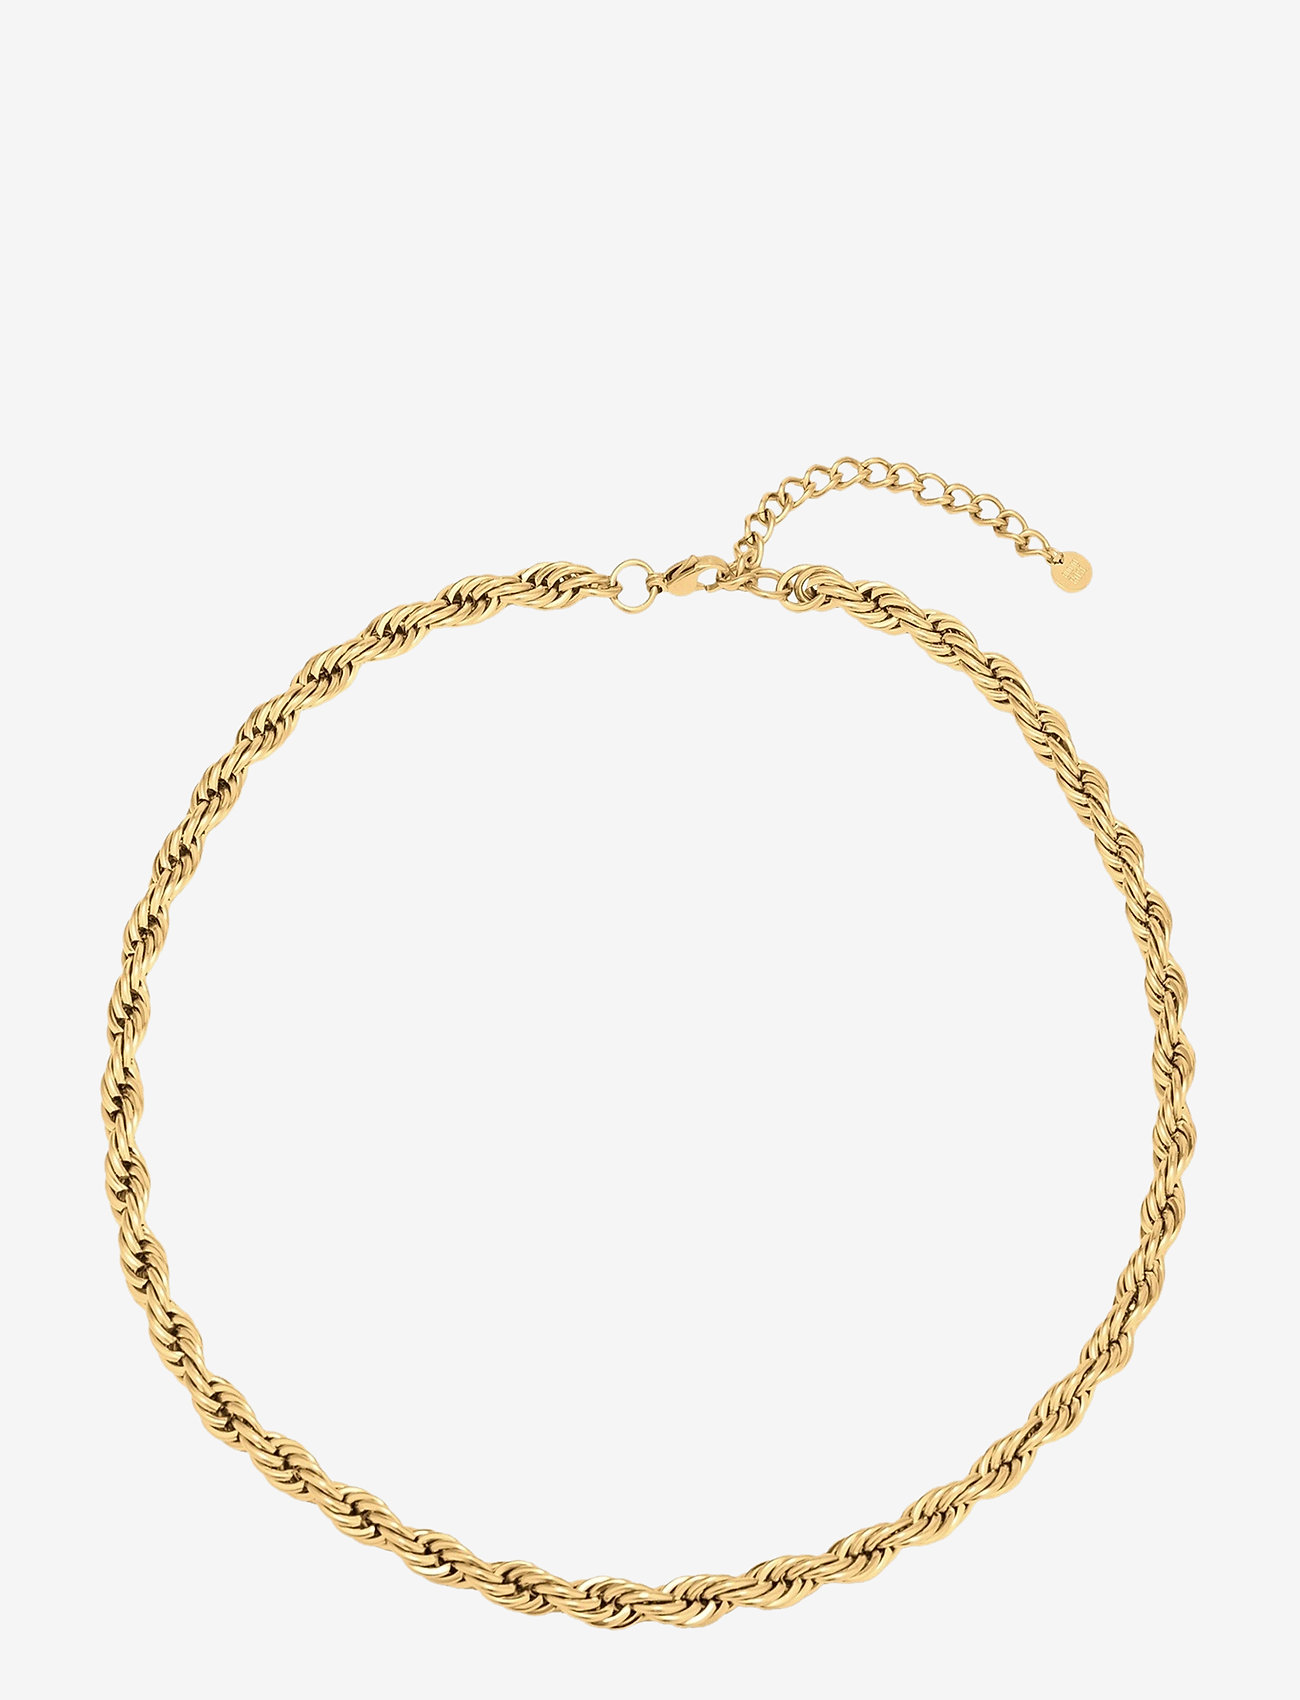 Bud to rose - Twine Chunky Short Necklace Gold - kettingen met hanger - silver - 0